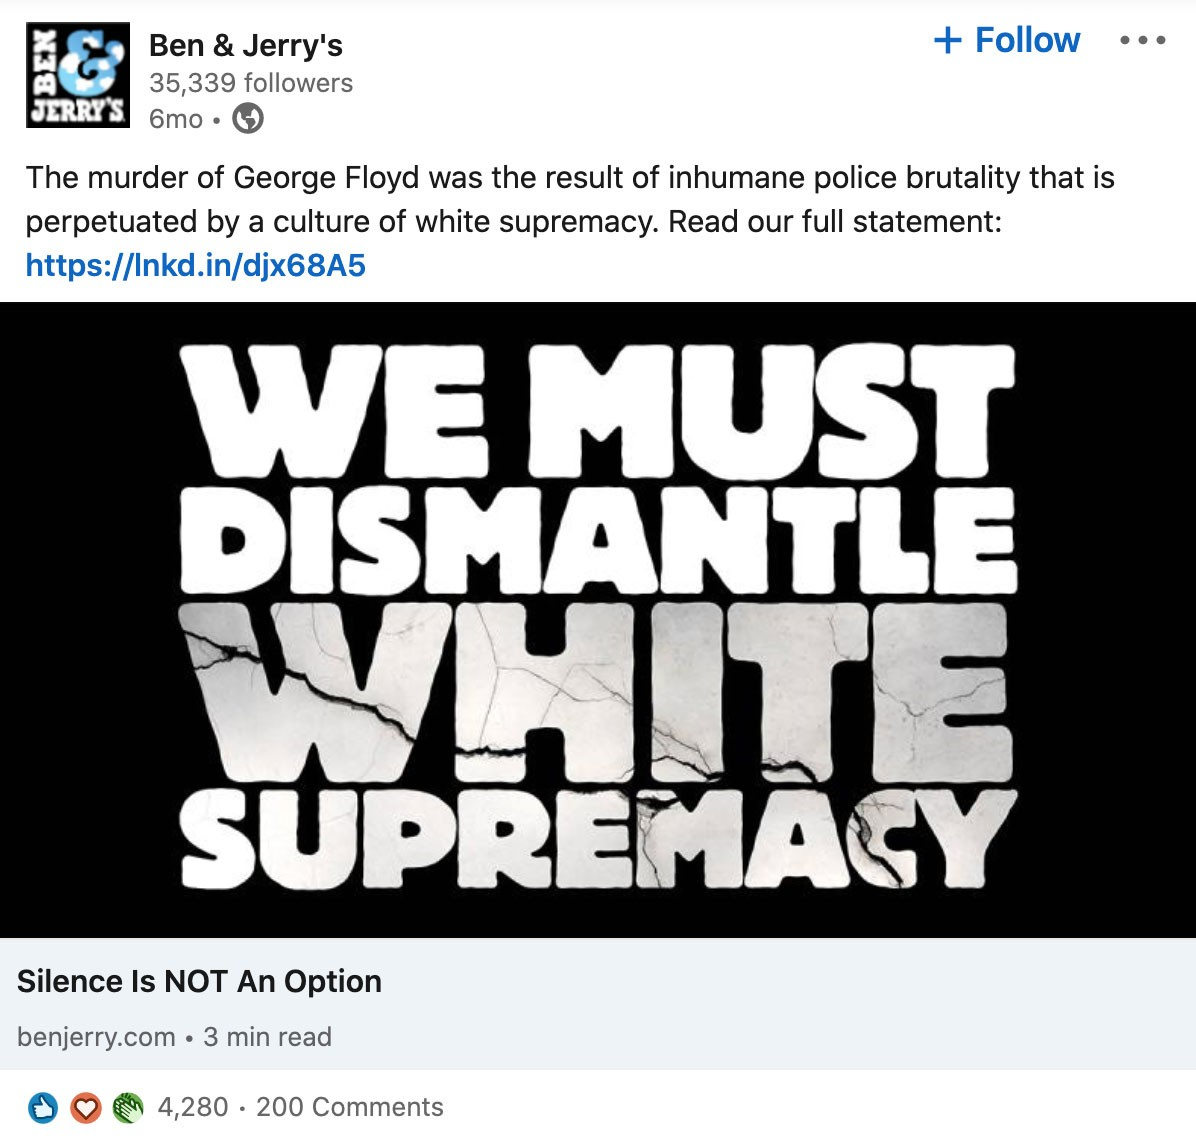 Screenshot of post from Ben & Jerry's LinkedIn Company Page:  The murder of George Floyd was the result of inhumane police brutality that is perpetuated by a culture of white supremacy. Read our full statement: https://lnkd.in/djx68A5  Includes graphic with bold lettering that says: We Must Dismantle White Supremacy - Silence Is NOT An Option  Post has 4,280 reactions and 200 comments